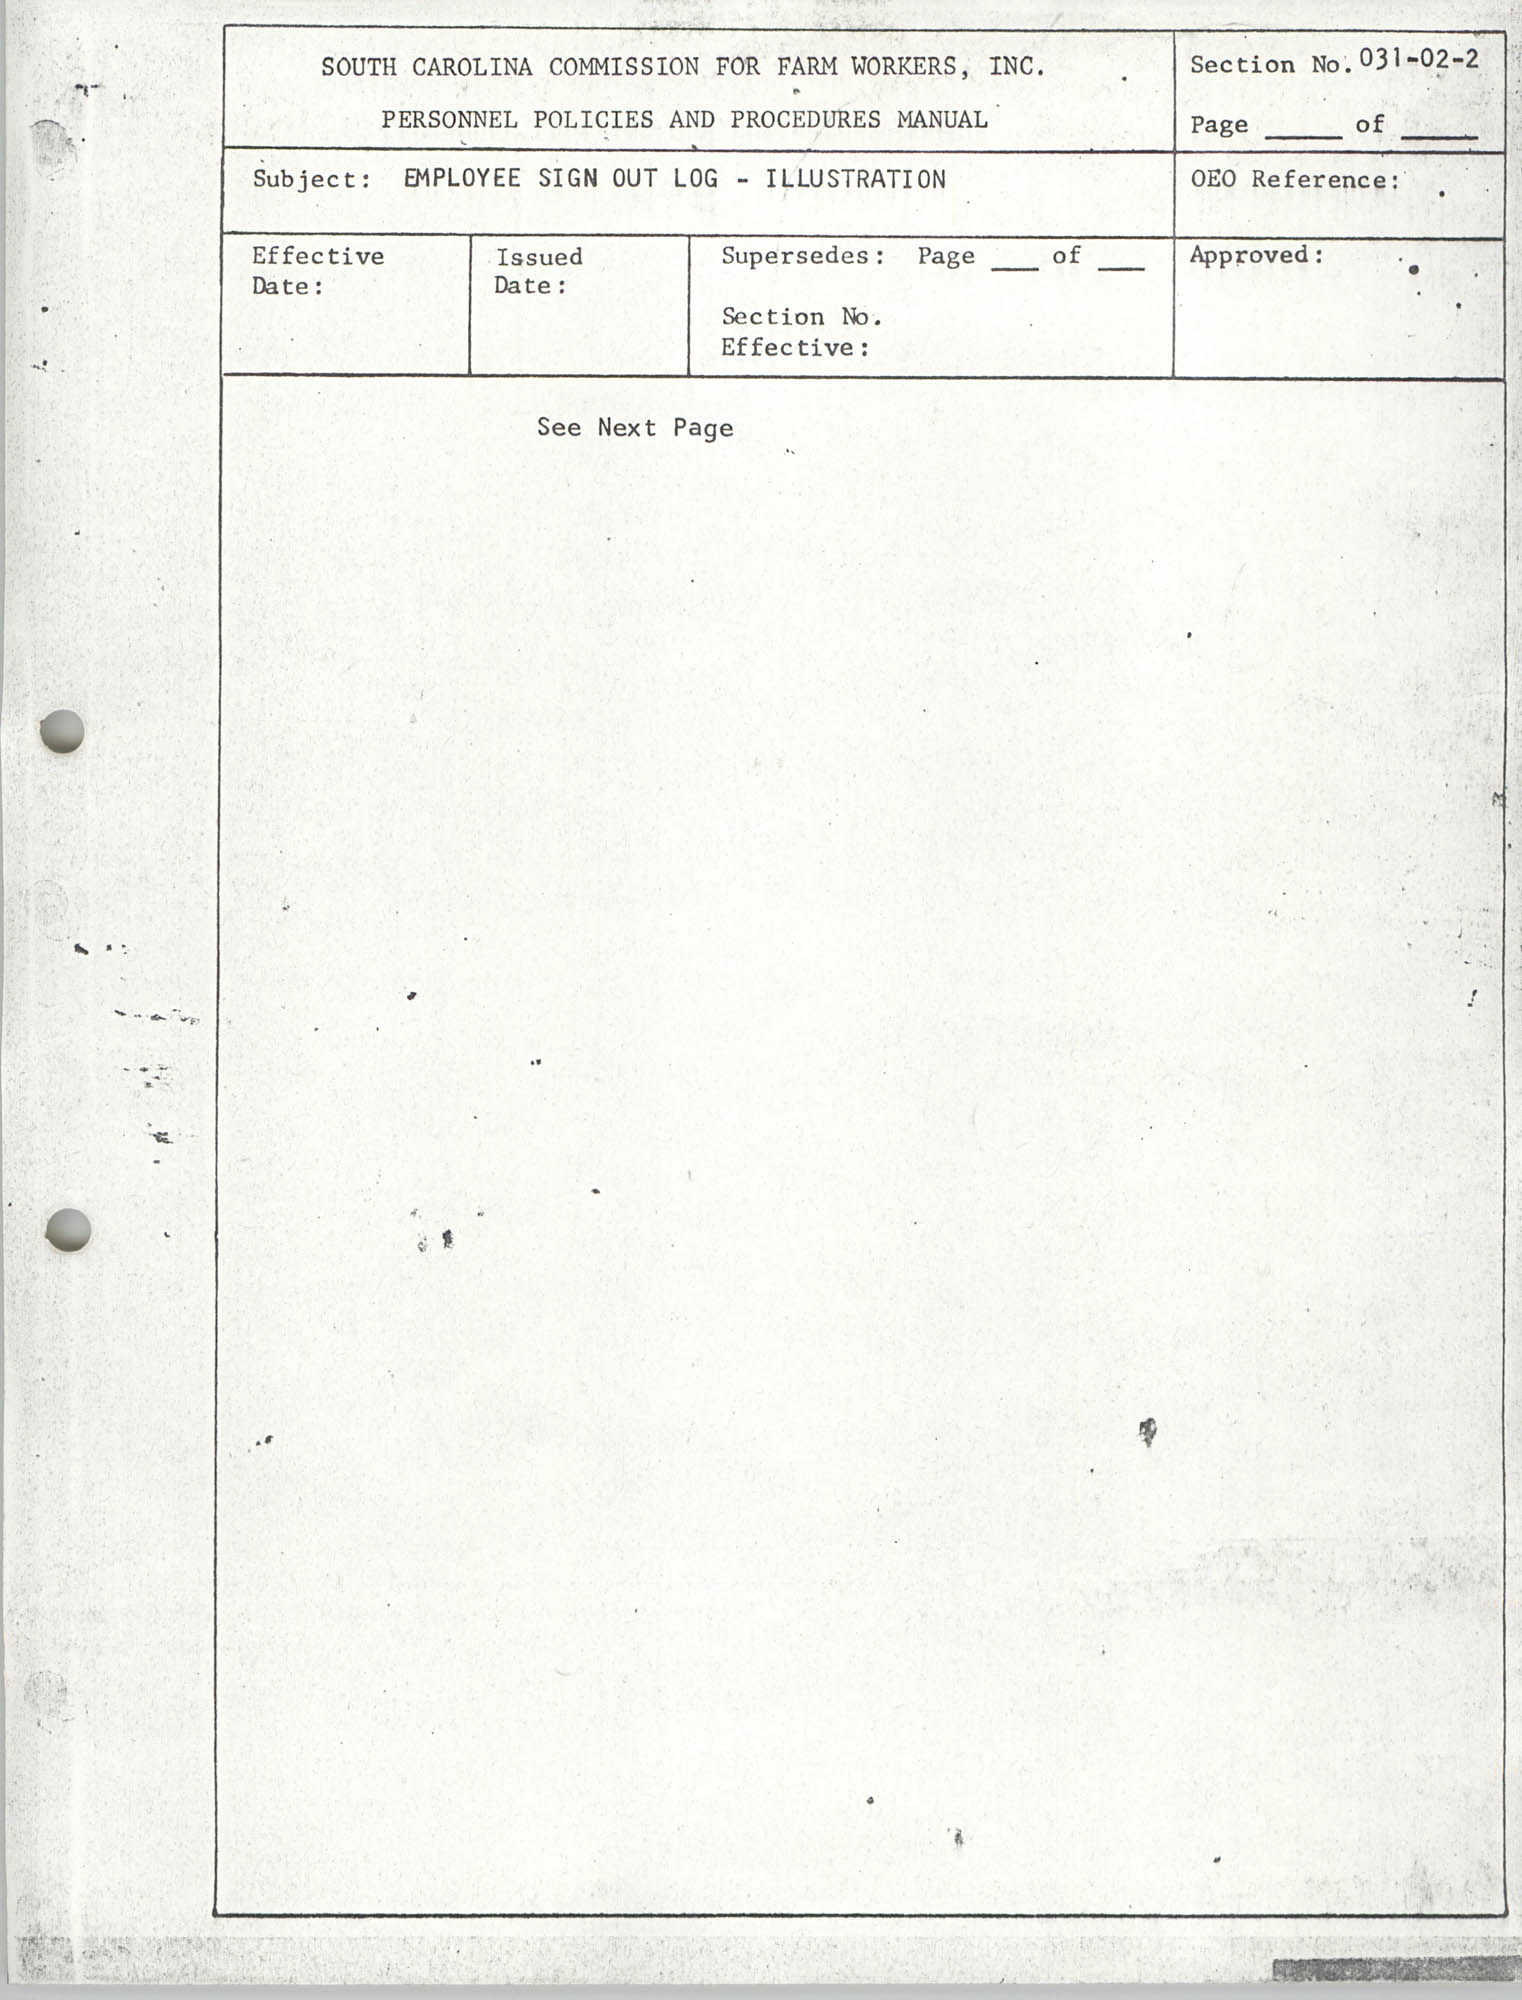 Personnel Policies and Procedures Manual, Section No. 031-02-2